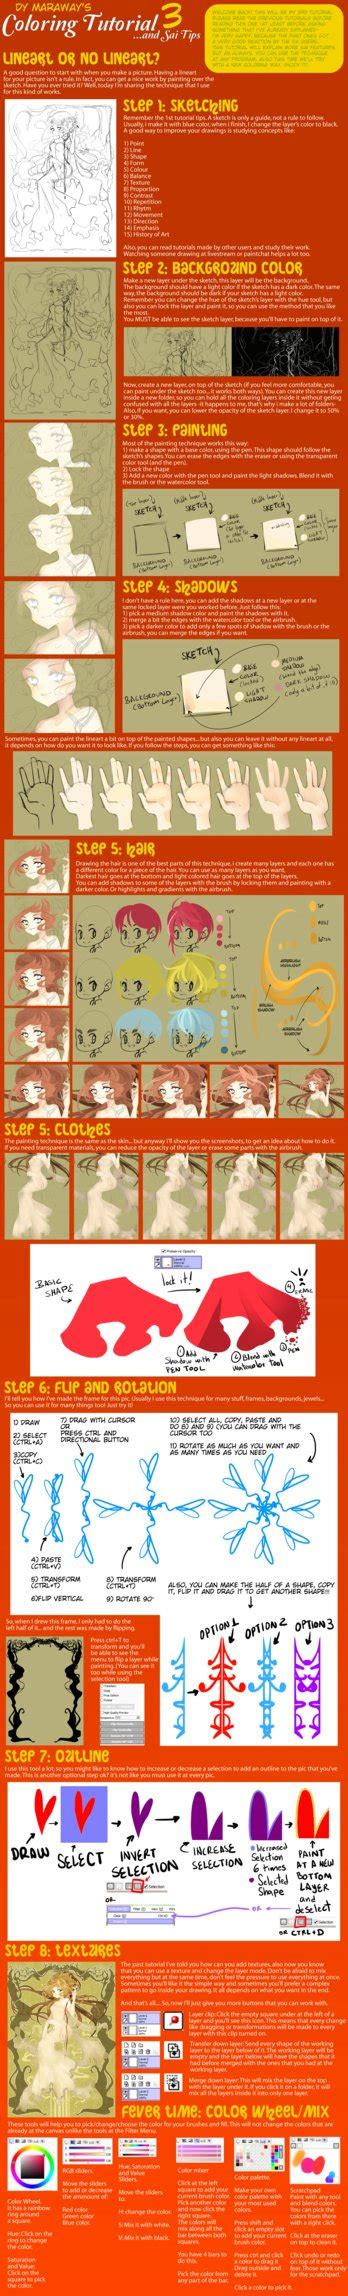 paint tool sai colouring tutorial deviantart coloring tutorial and sai tips 3 by dymaraway on deviantart